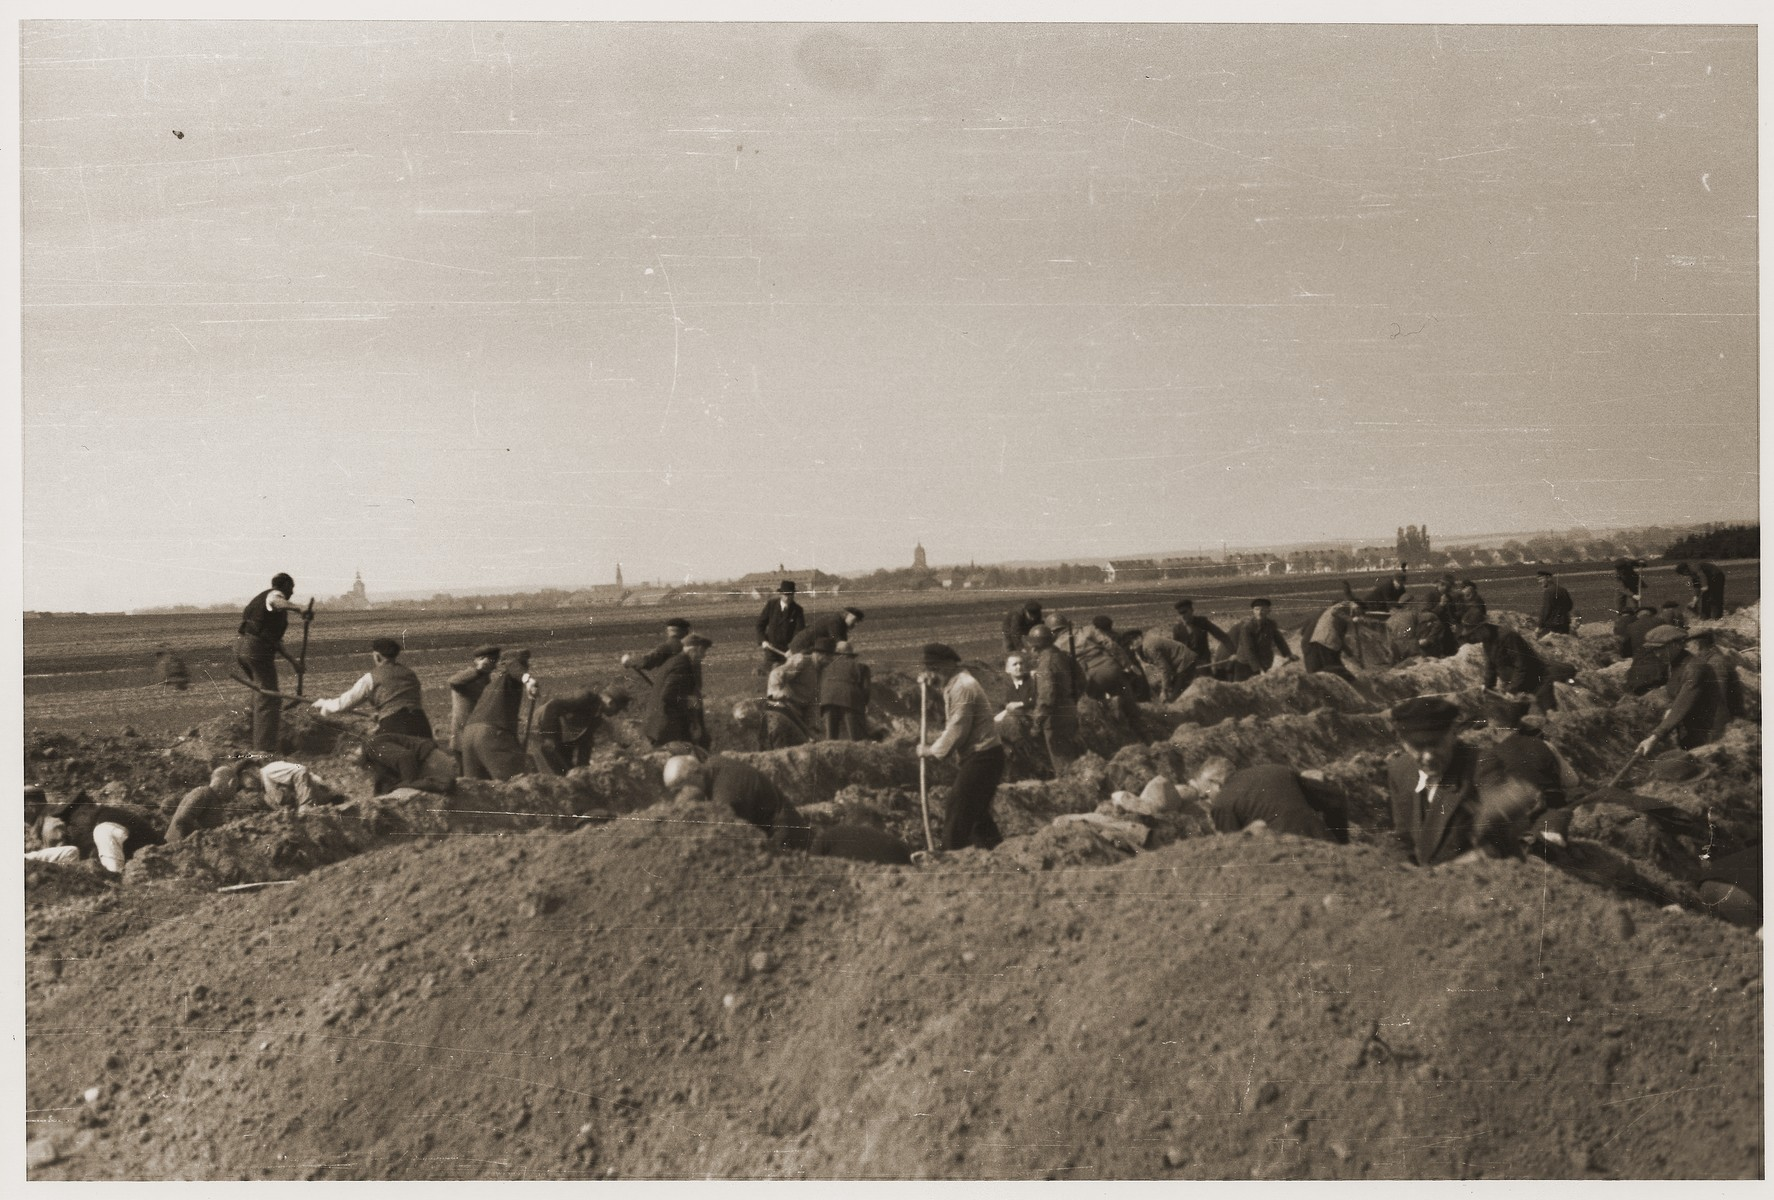 German civilians dig graves for the bodies of concentration camp prisoners killed by the SS in a barn just outside of Gardelegen, which can be seen in the background.